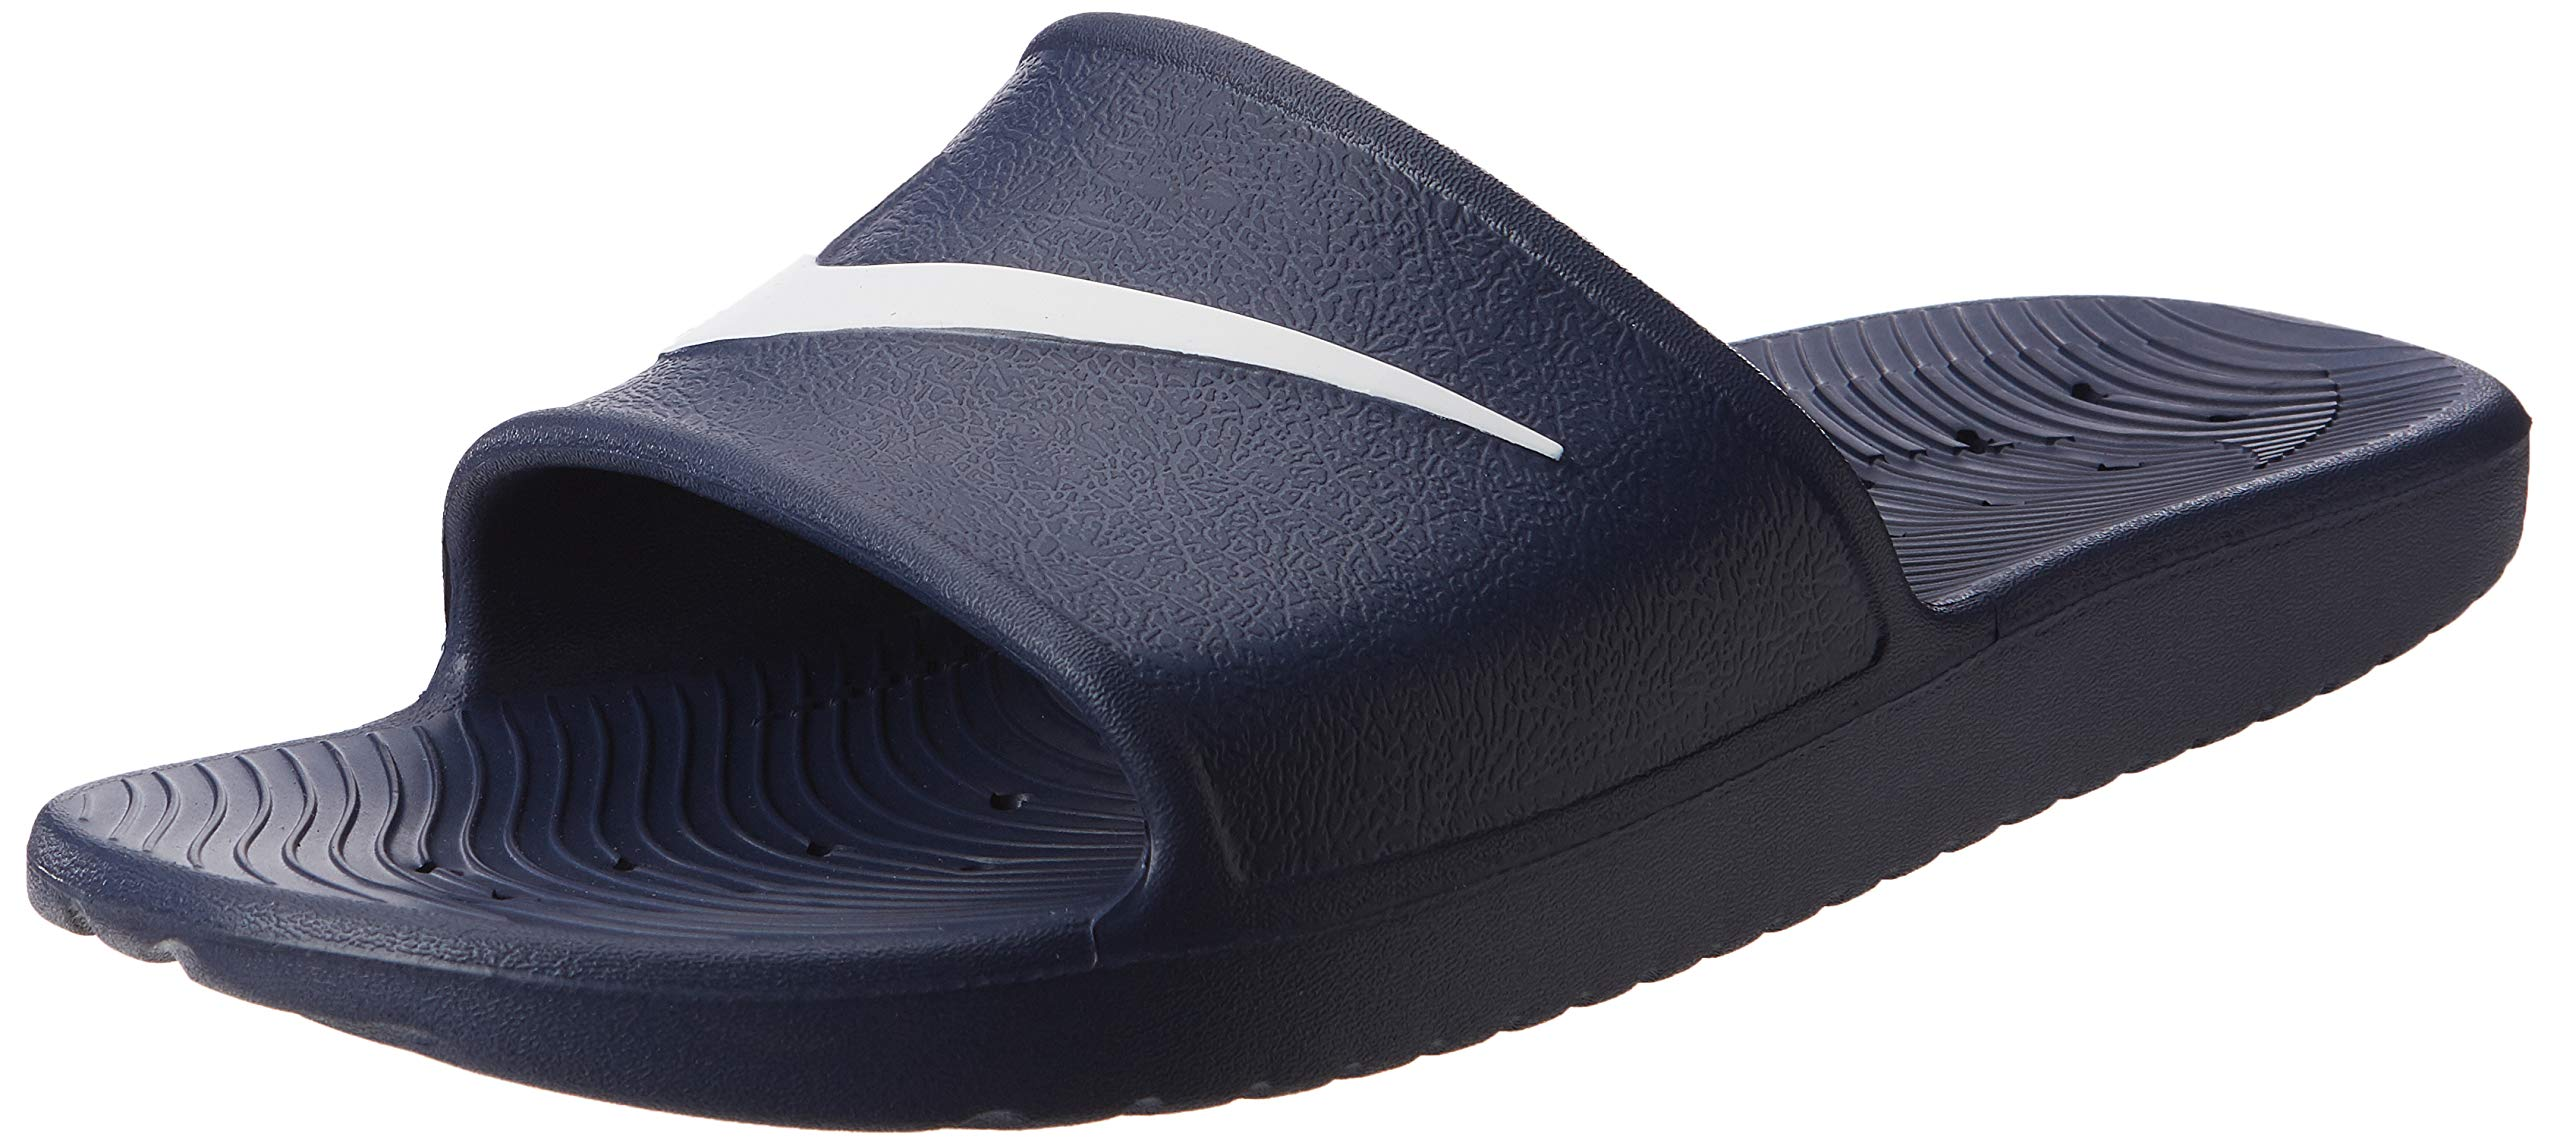 315bedf948 Galleon - Nike Men's Kawa Shower Slide Sandals Midnight Navy/White Size 12  M US